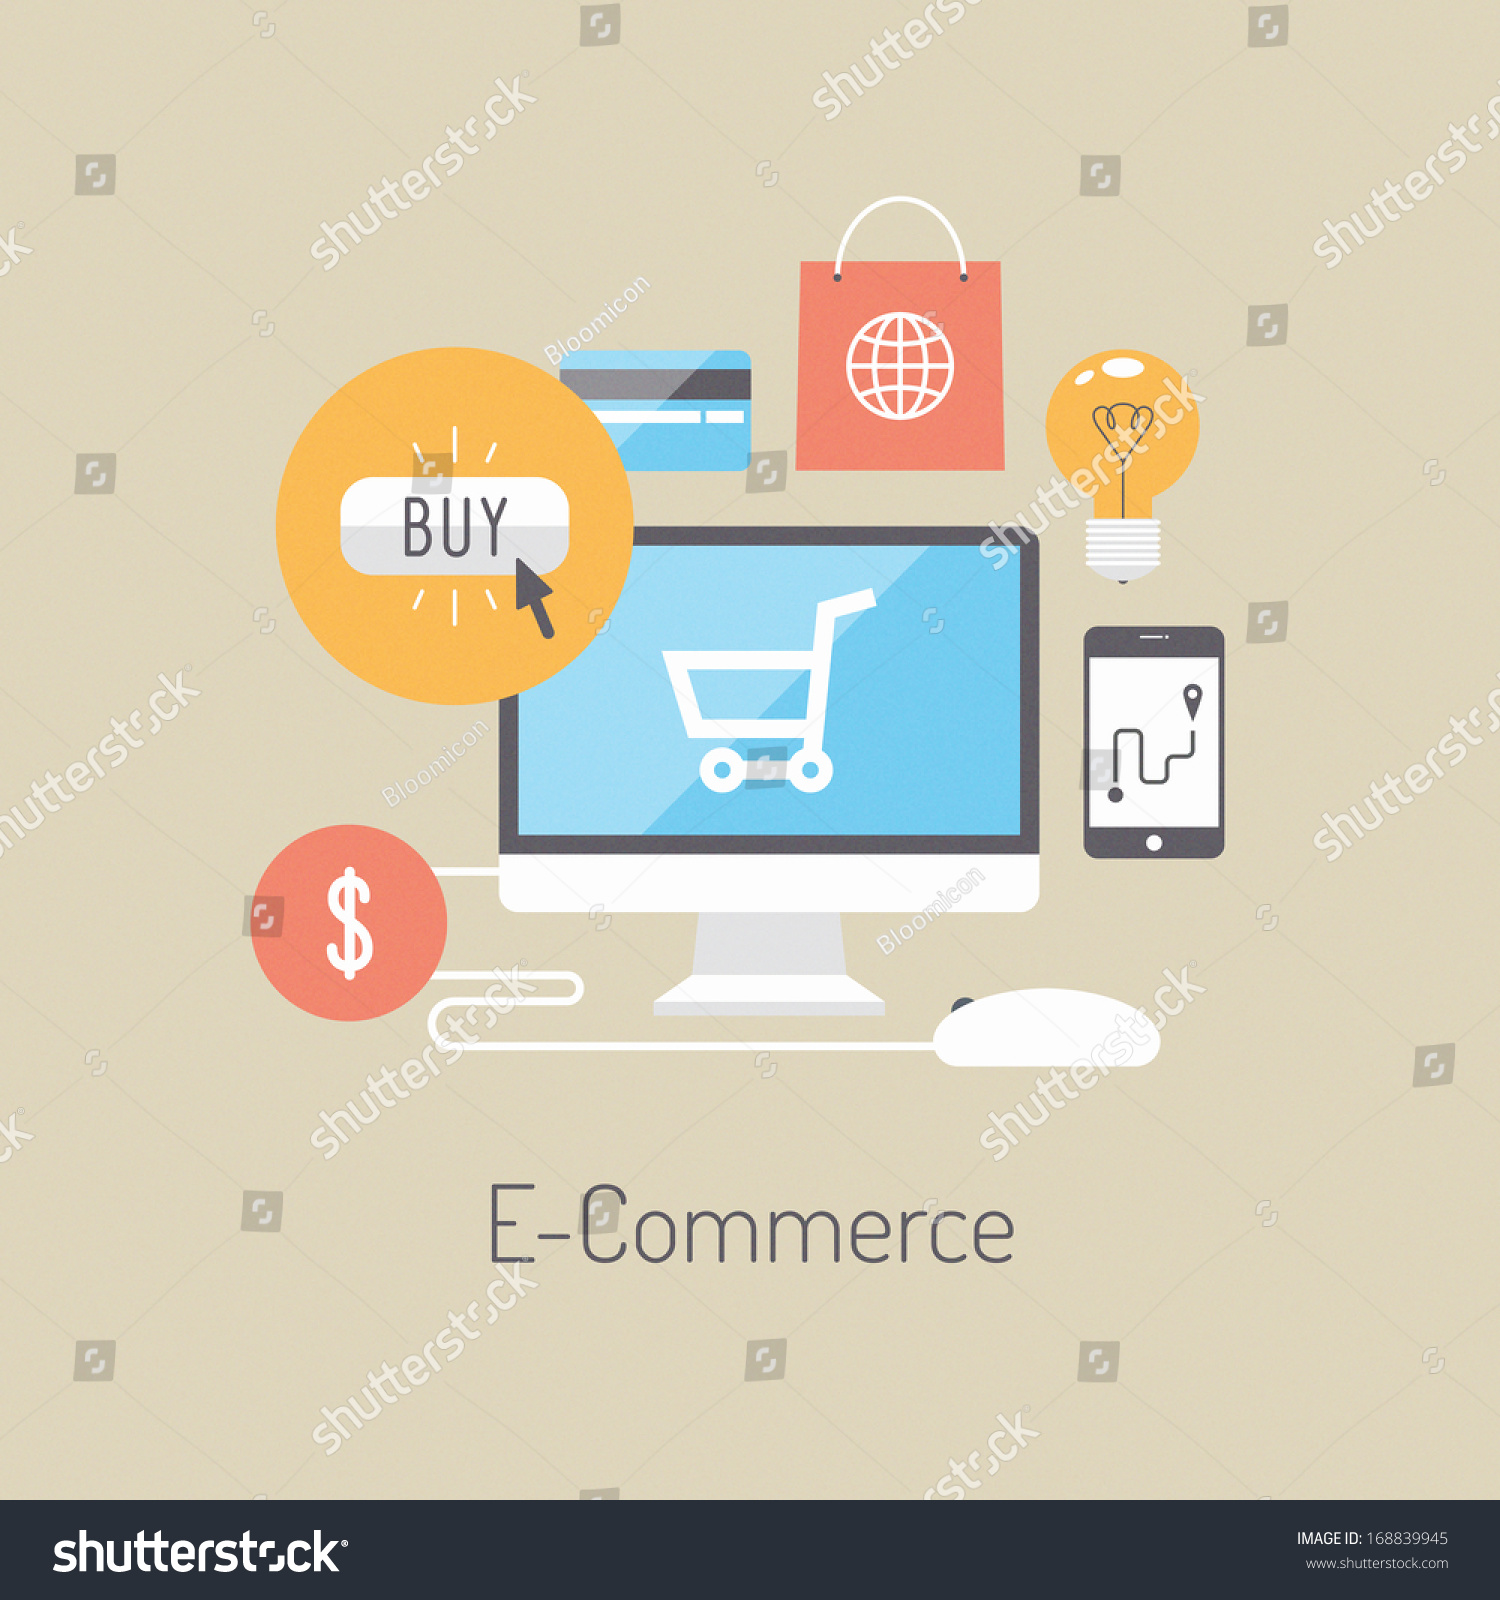 Flat design vector illustration poster concept stock for Outlet design online